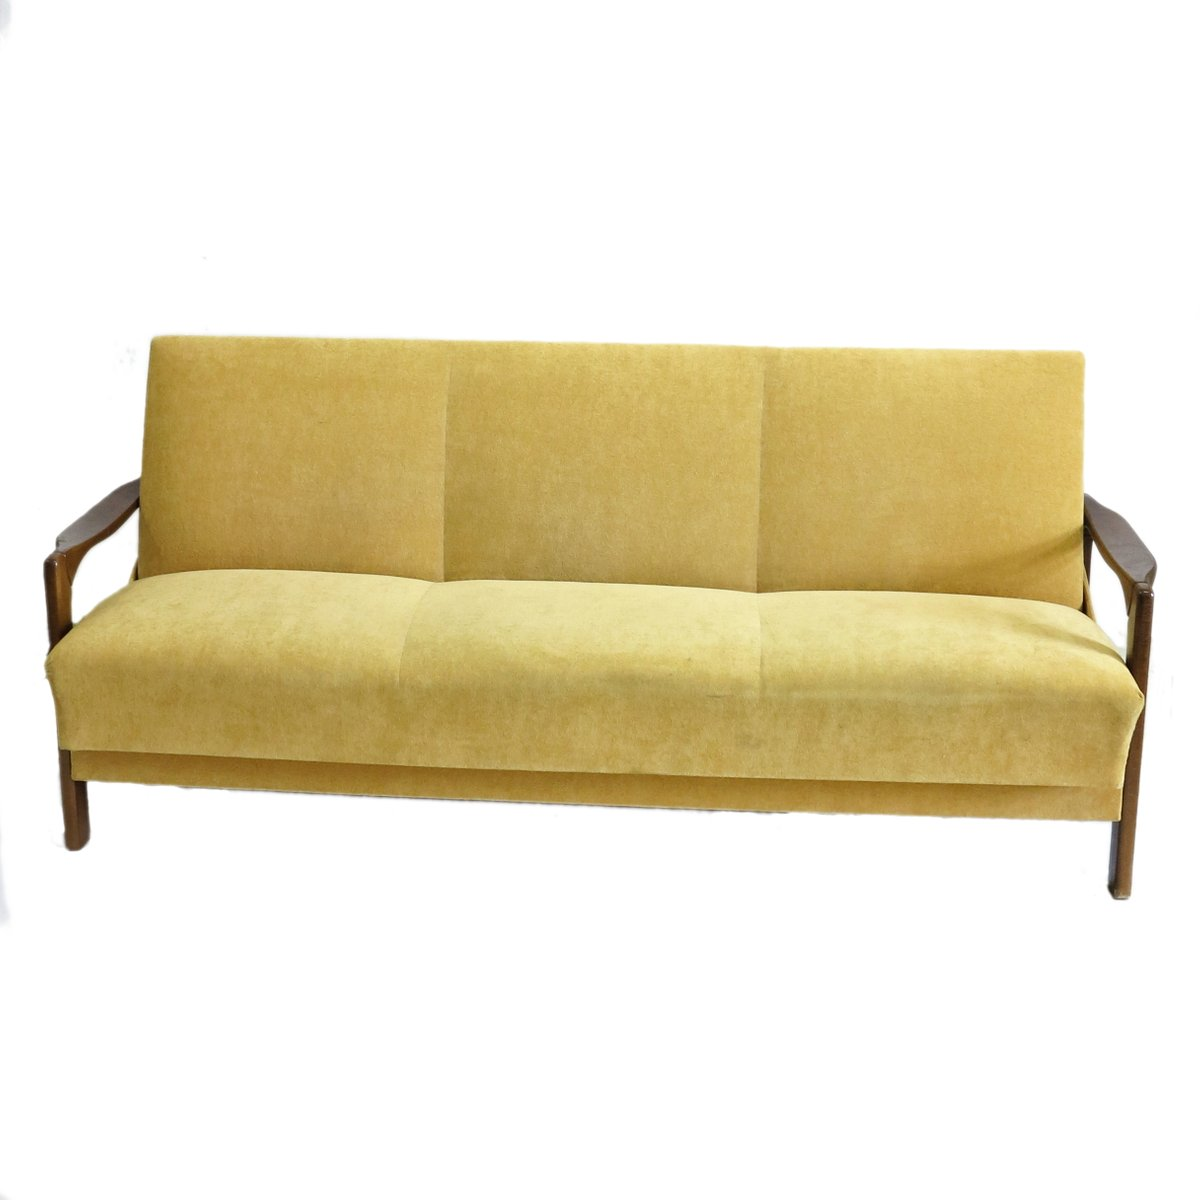 Vintage Yellow Sofa For Sale At Pamono